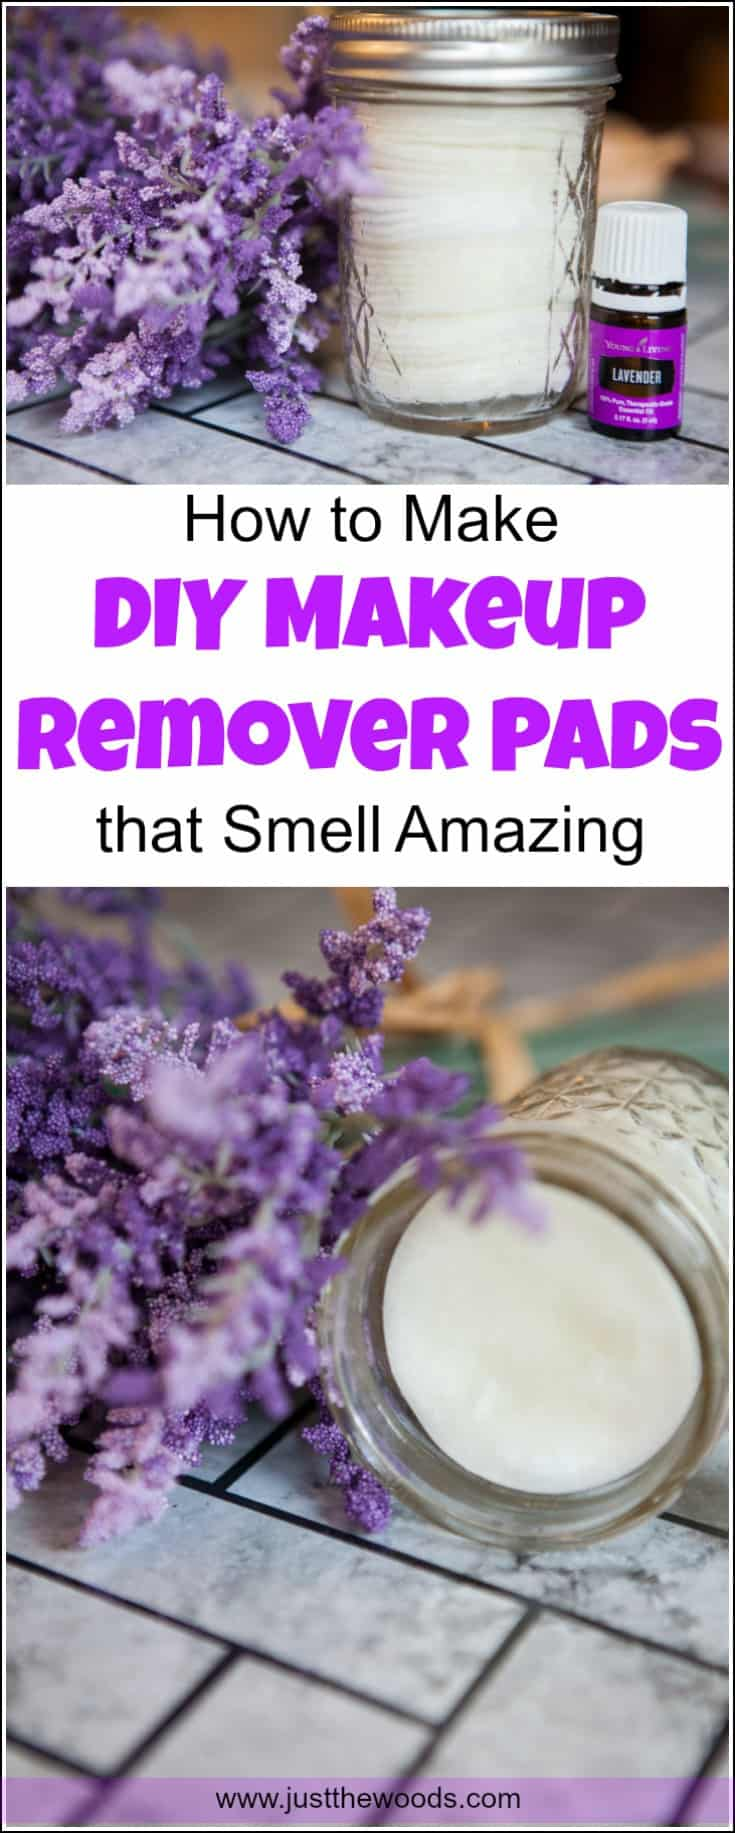 How to Make DIY Makeup Remover Pads with natural ingredients and essential oils. These homemade makeup remover wipes will leave you feeling clean and fresh without chemicals. Make your own makeup remover at home with this homemade eye makeup remover recipe. DIY makeup wipes, how to make makeup remover.